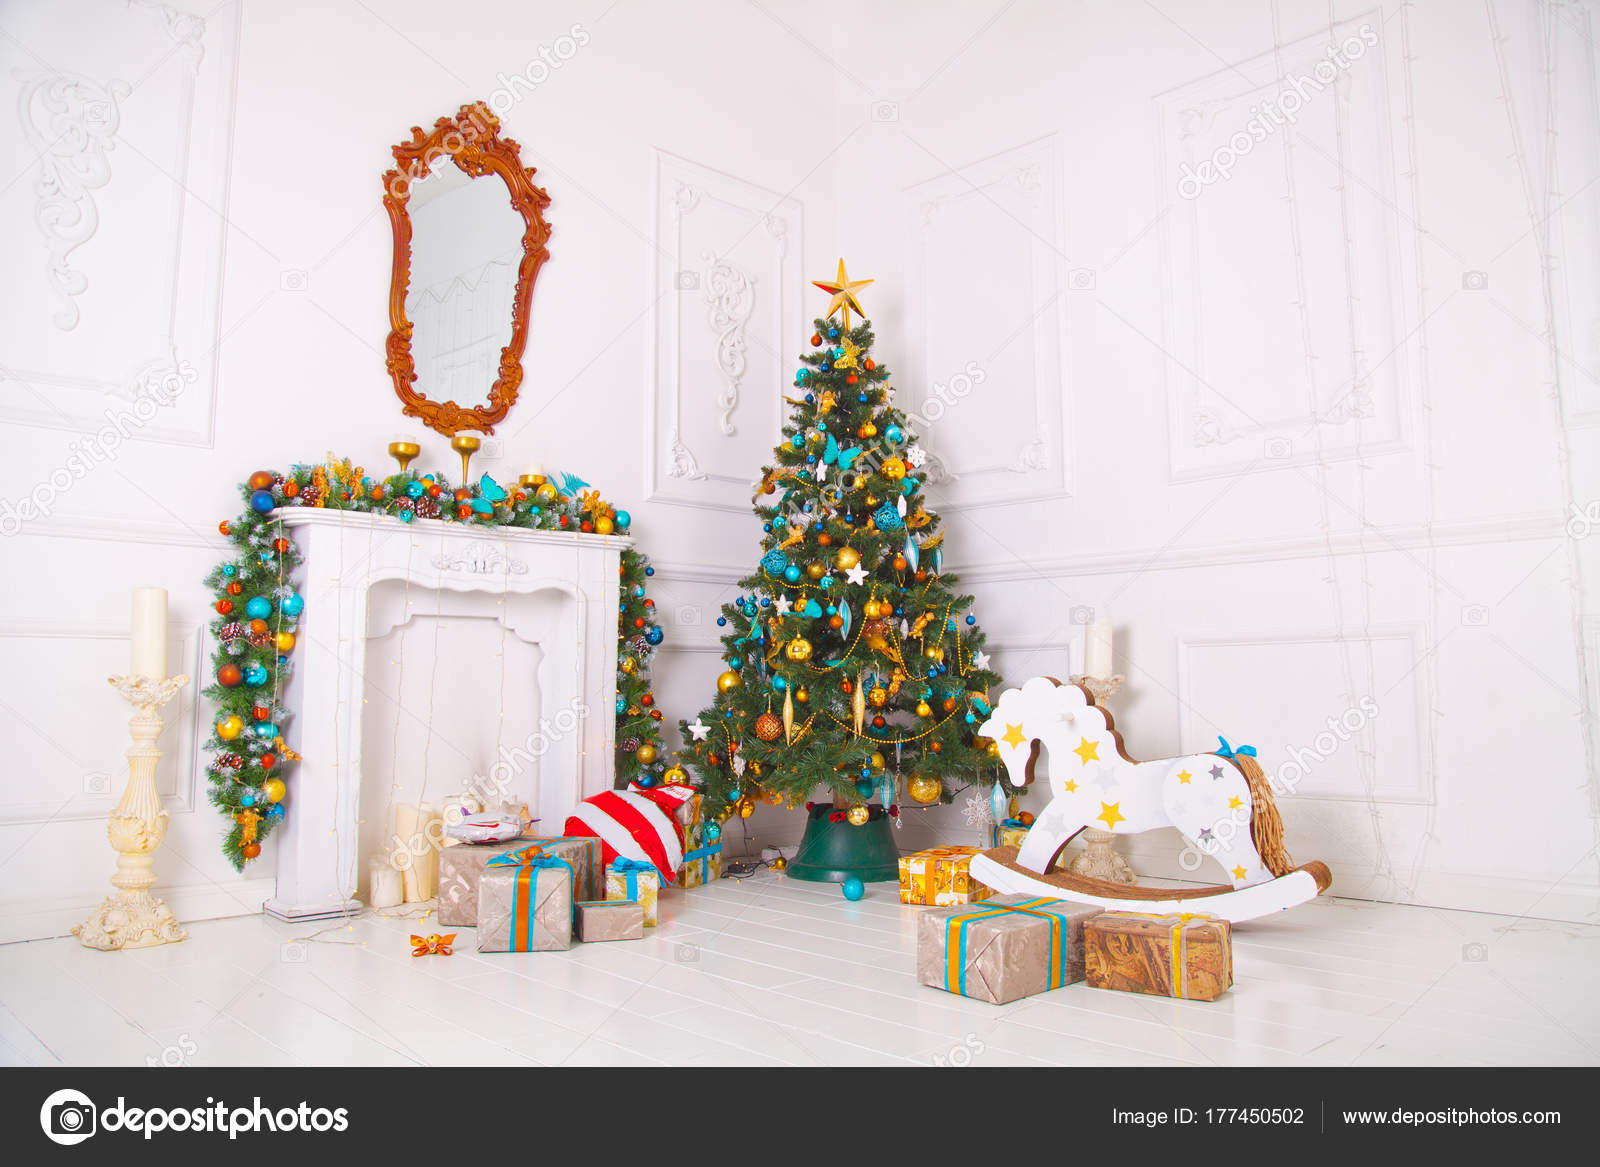 beautiful cozy white room with green christmas tree with blue and golden decorations and presents underneath with beautiful fireplace with candles and toy - Green Christmas Tree With Blue Decorations